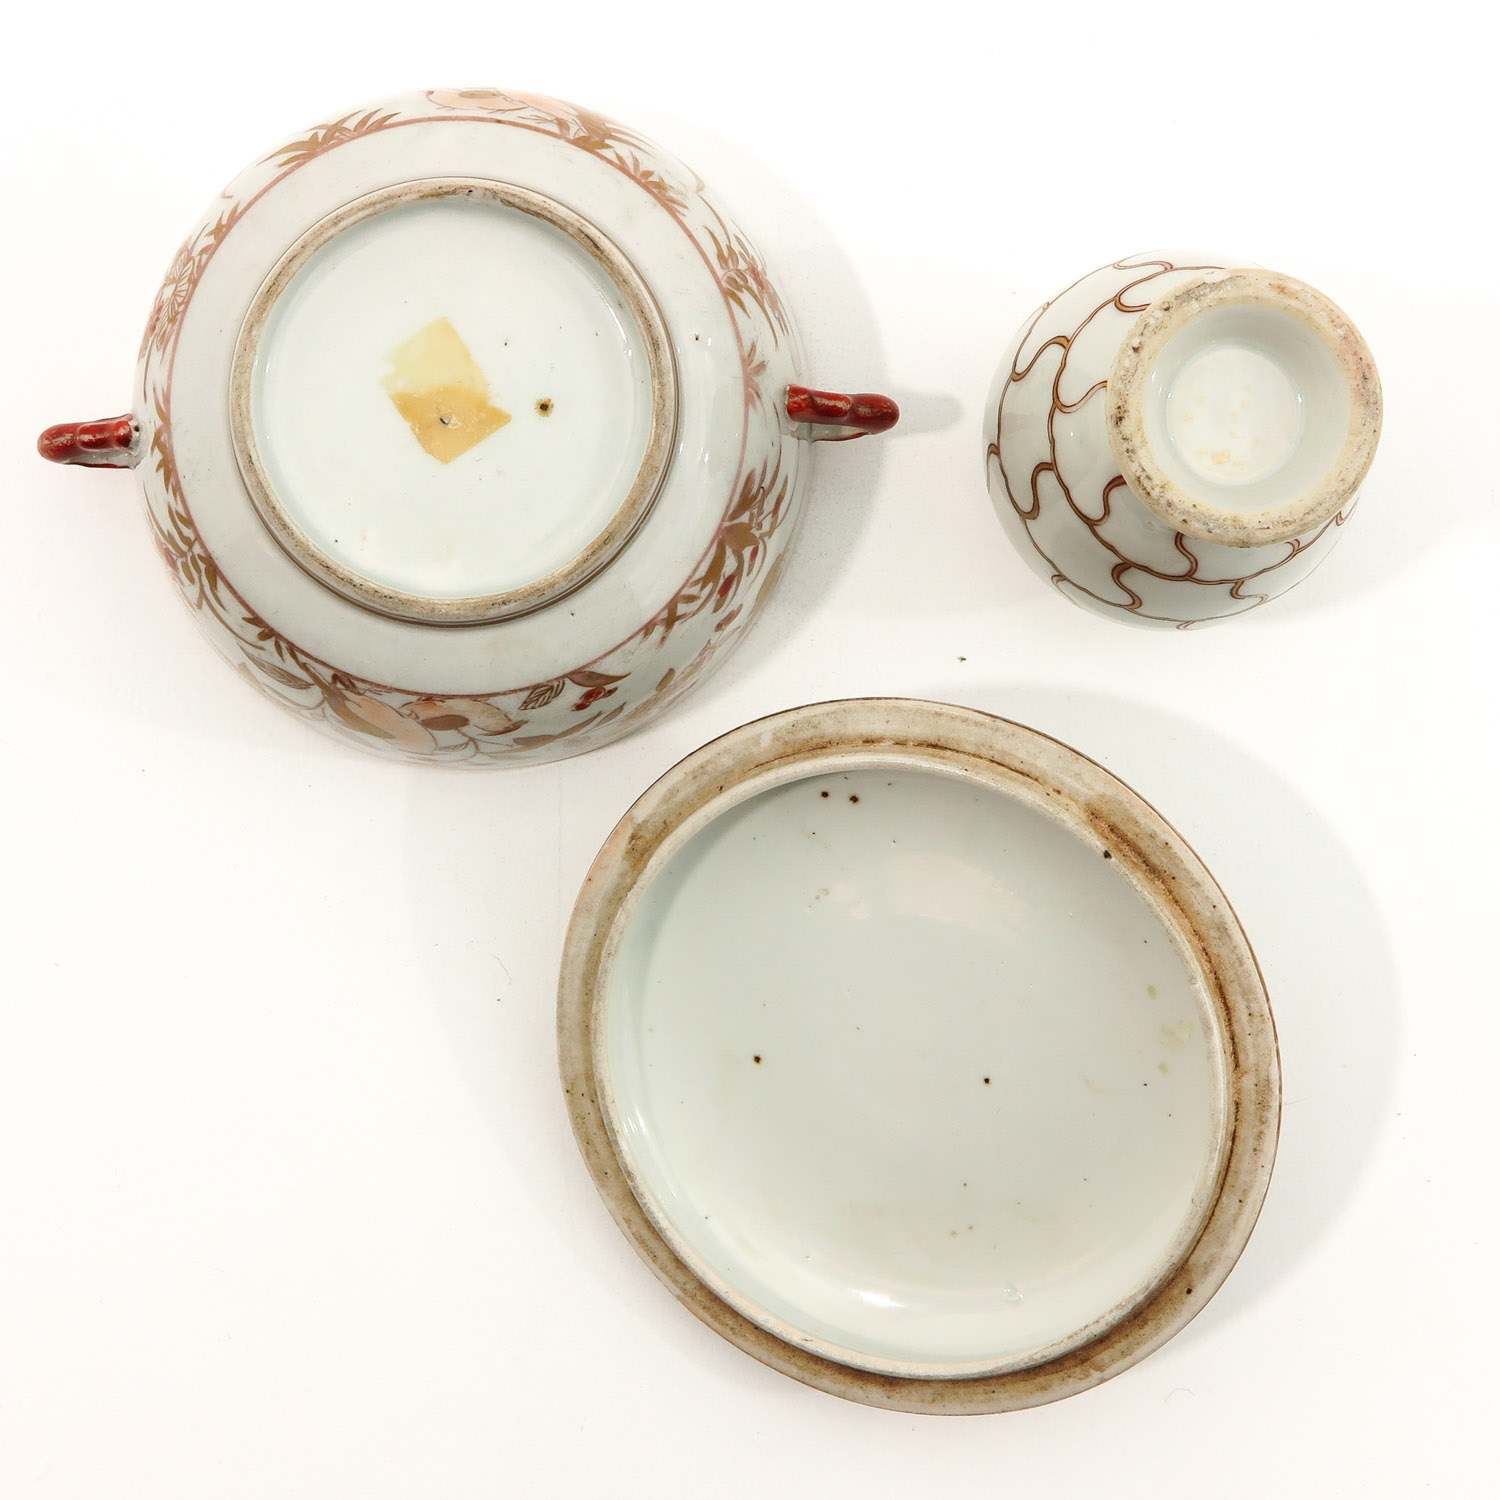 A Tea Box and Covered Dish - Image 6 of 9